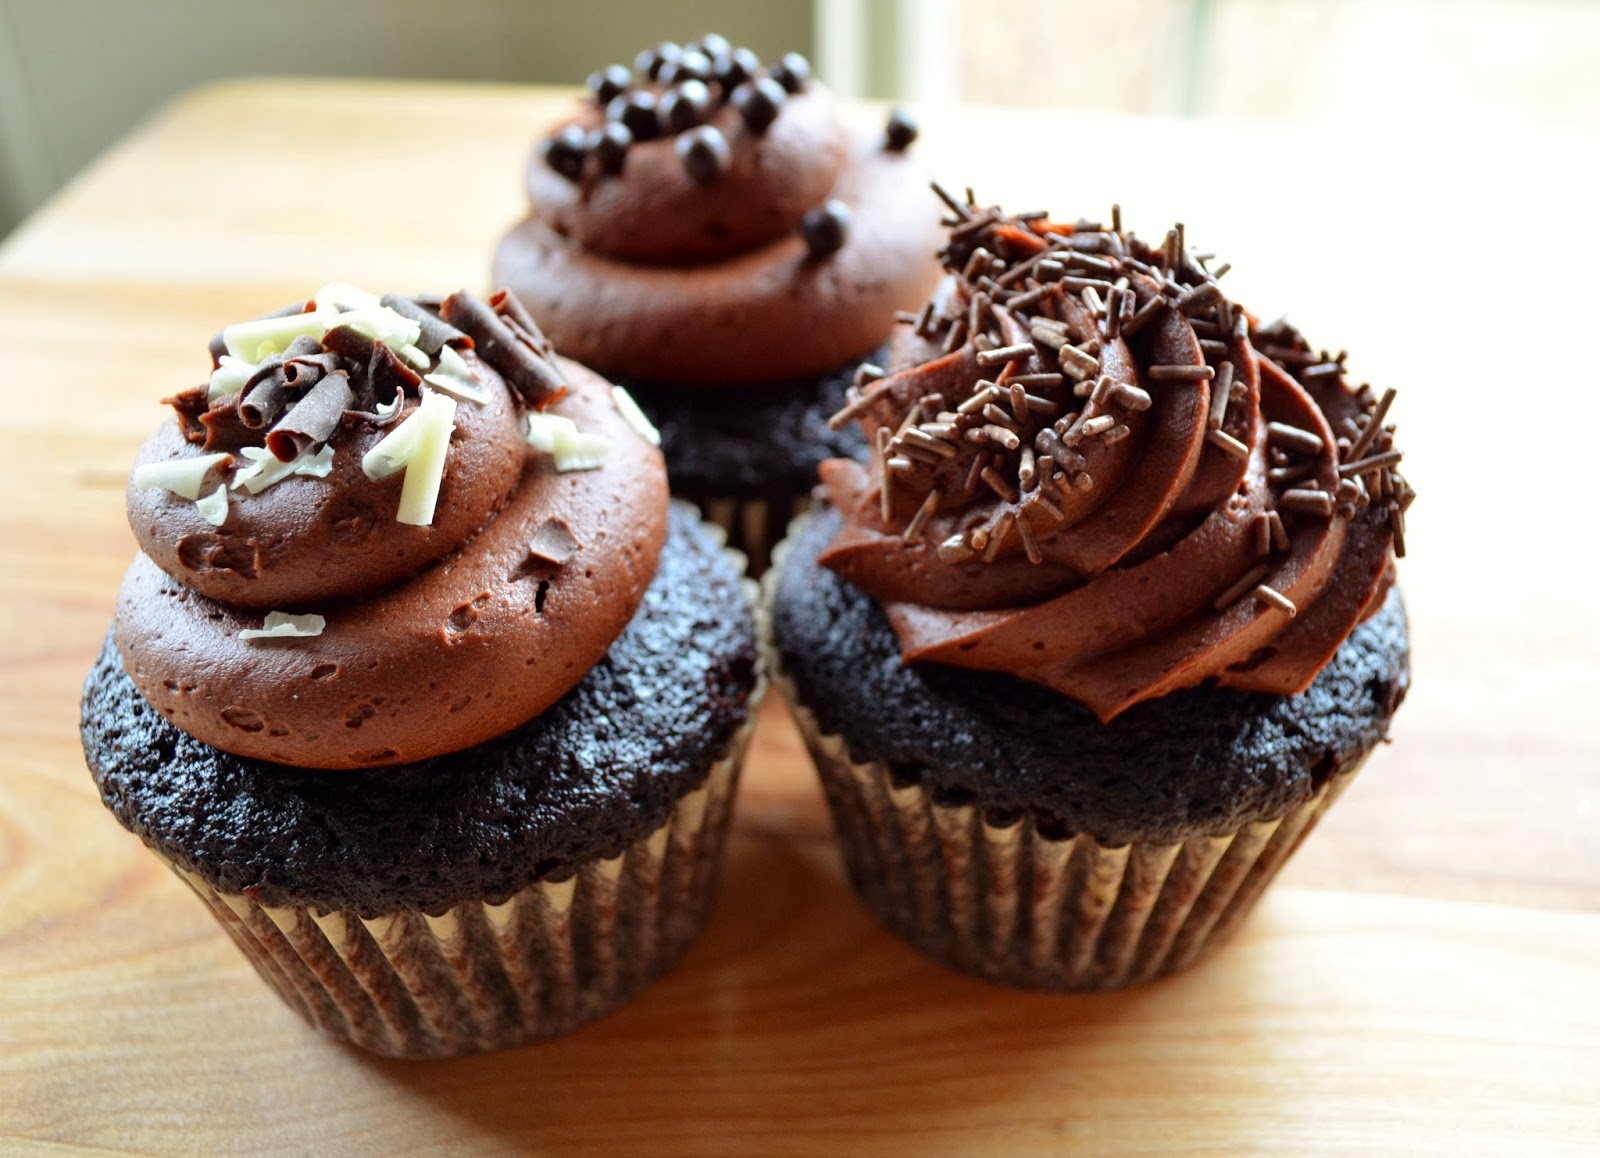 Basil: Chocolate Cupcakes with Chocolate Buttercream Frosting